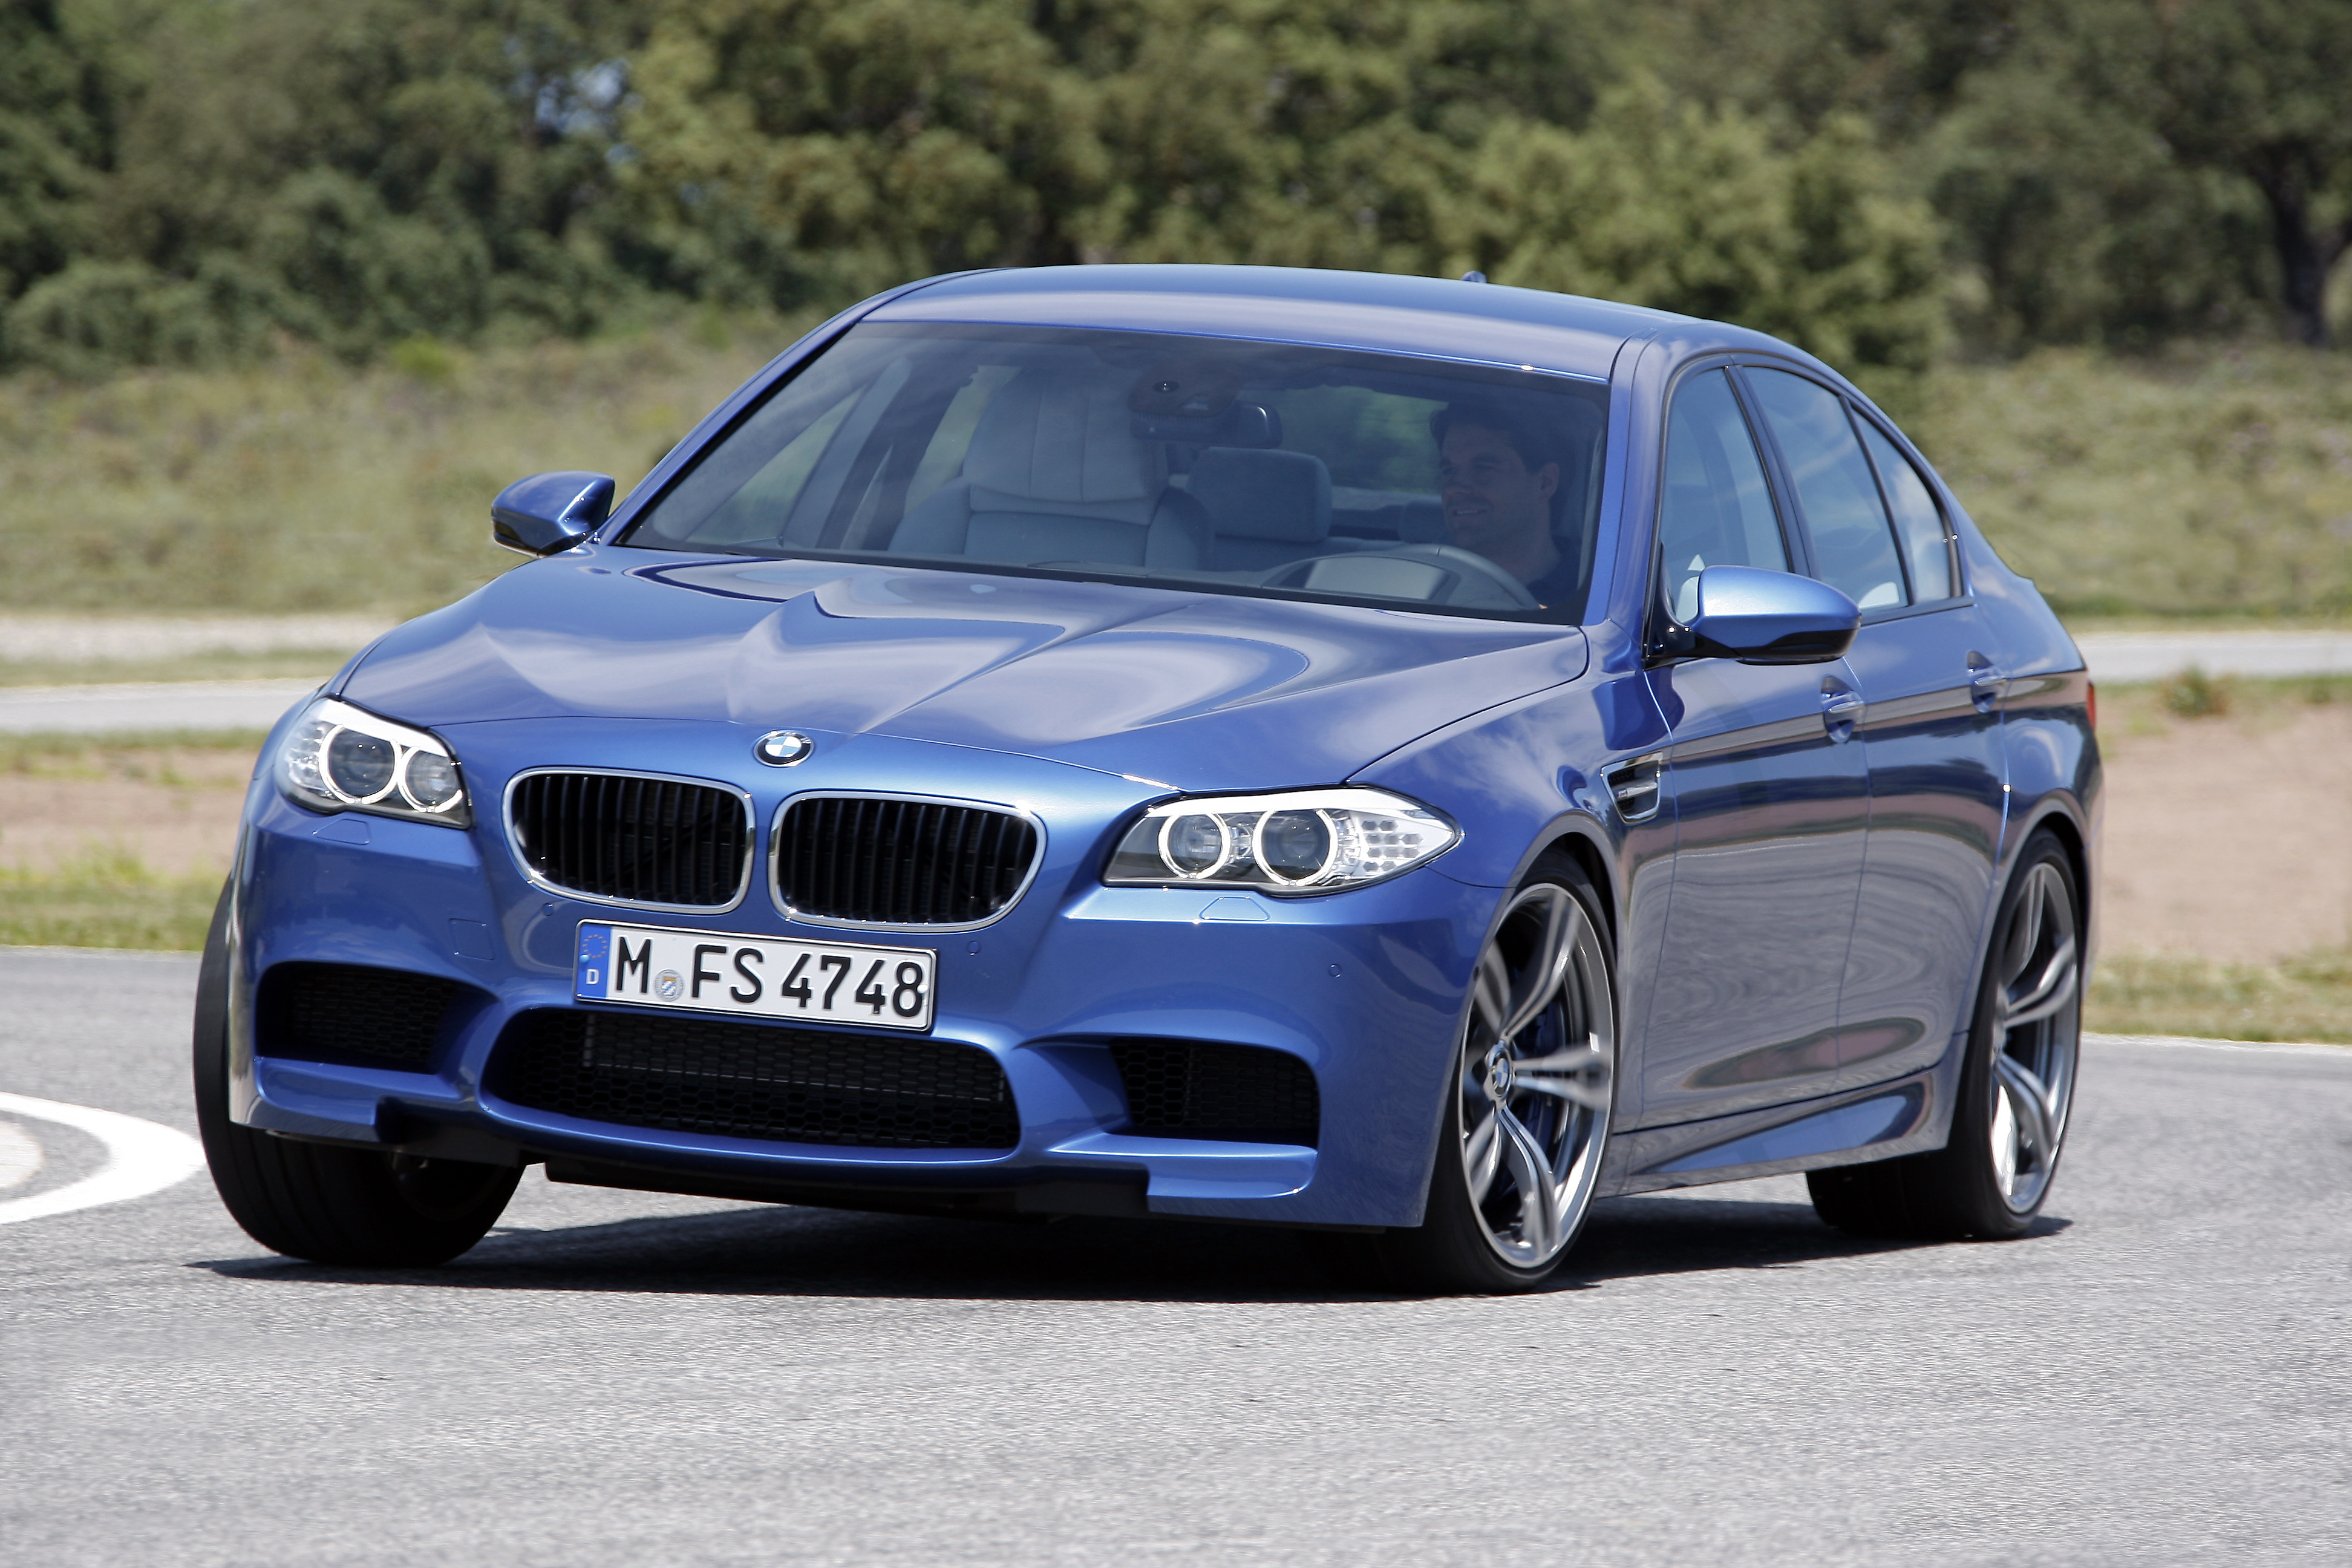 OFFICIAL BMW M5 Production pics high resolution!-p90078367.jpg